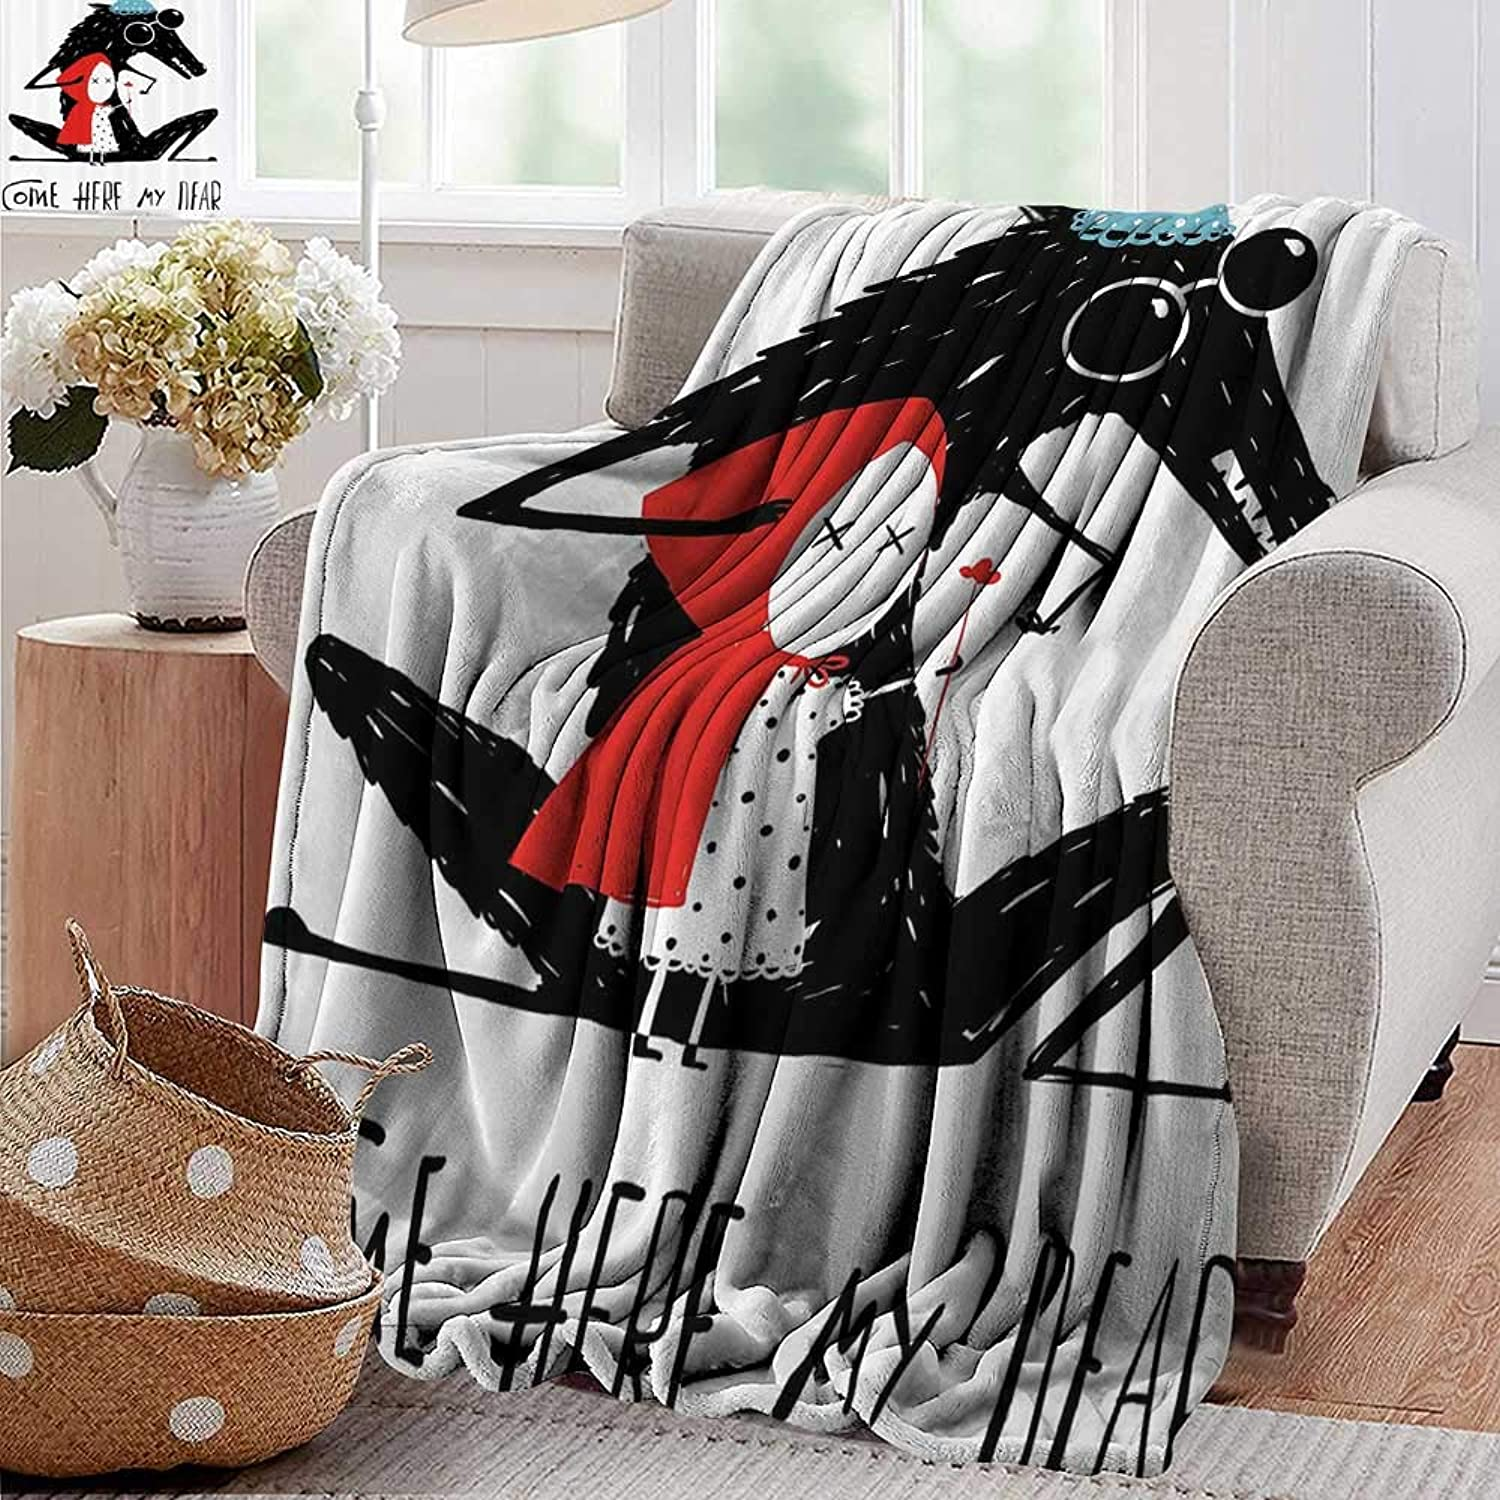 Throw Blankets Fleece Blanket,Lifestyle,Come Here My Dear Quote with Grandma Wolf and Snow White Kids Graphic Print,Teal Red Black,300GSM, Super Soft and Warm, Durable 35 x60